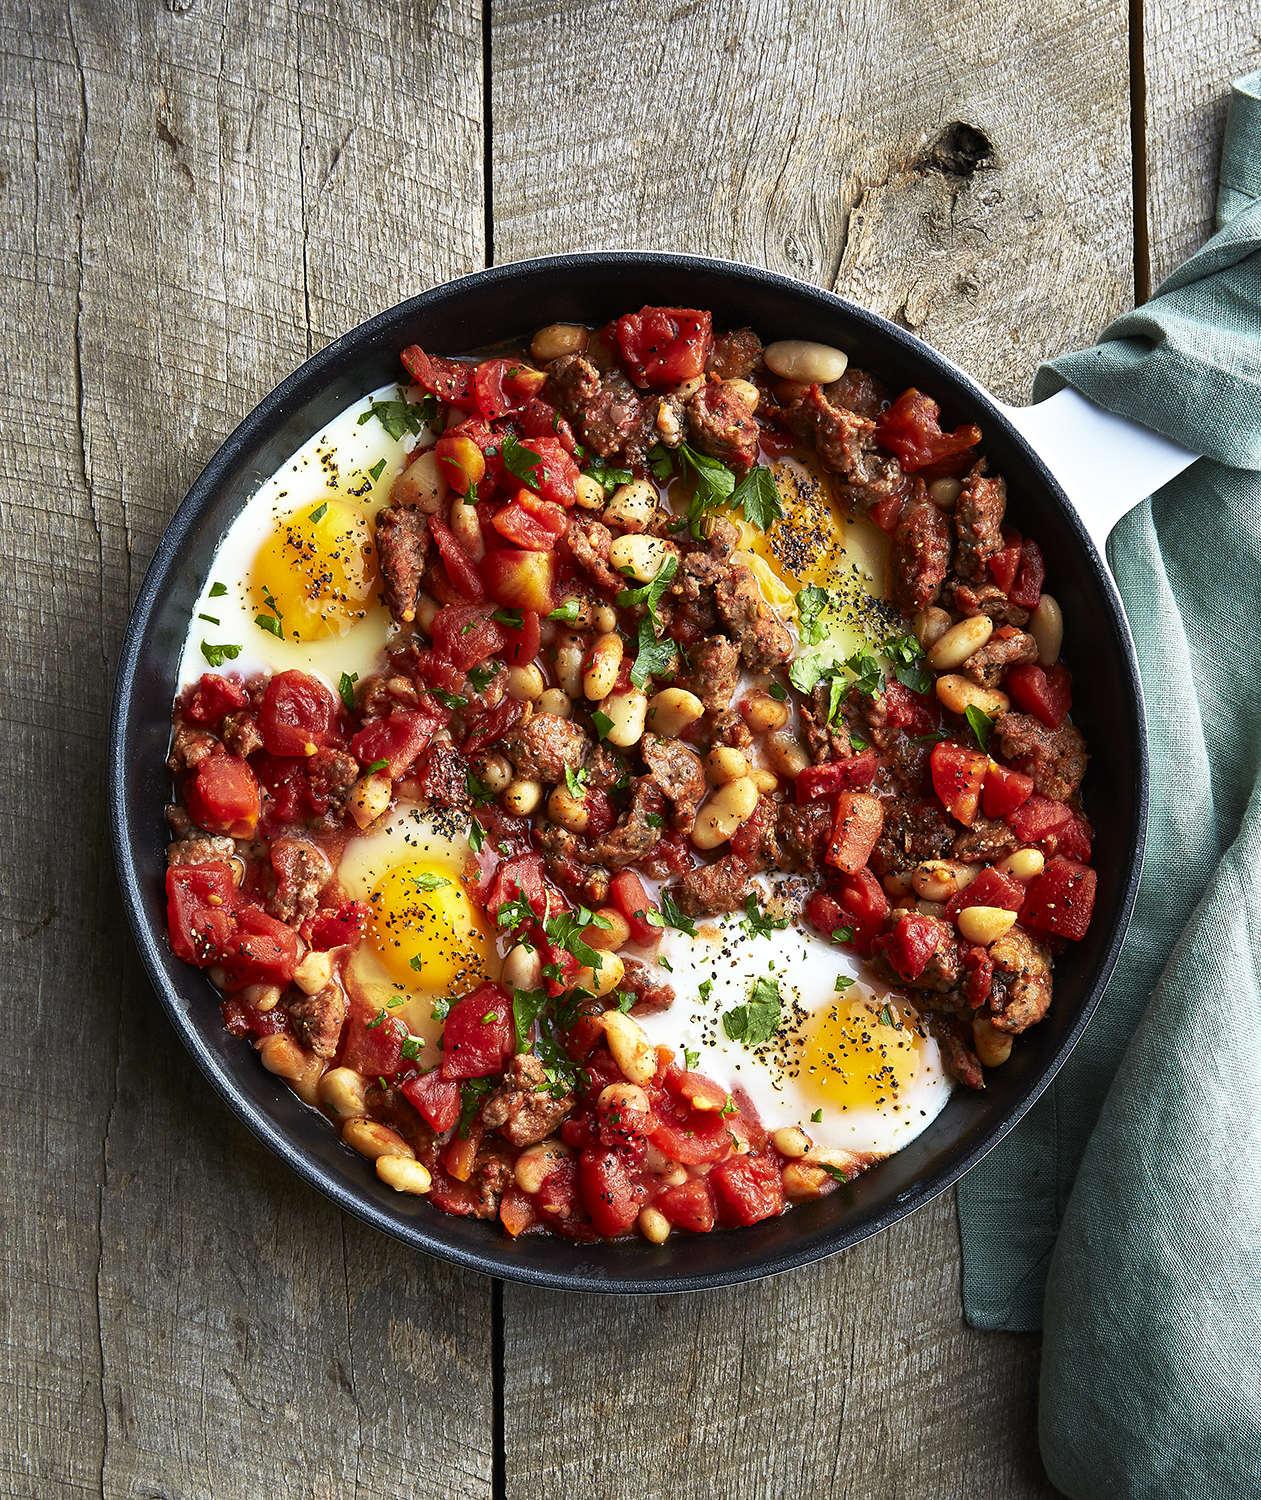 Baked Eggs With Beans and Lamb Sausage